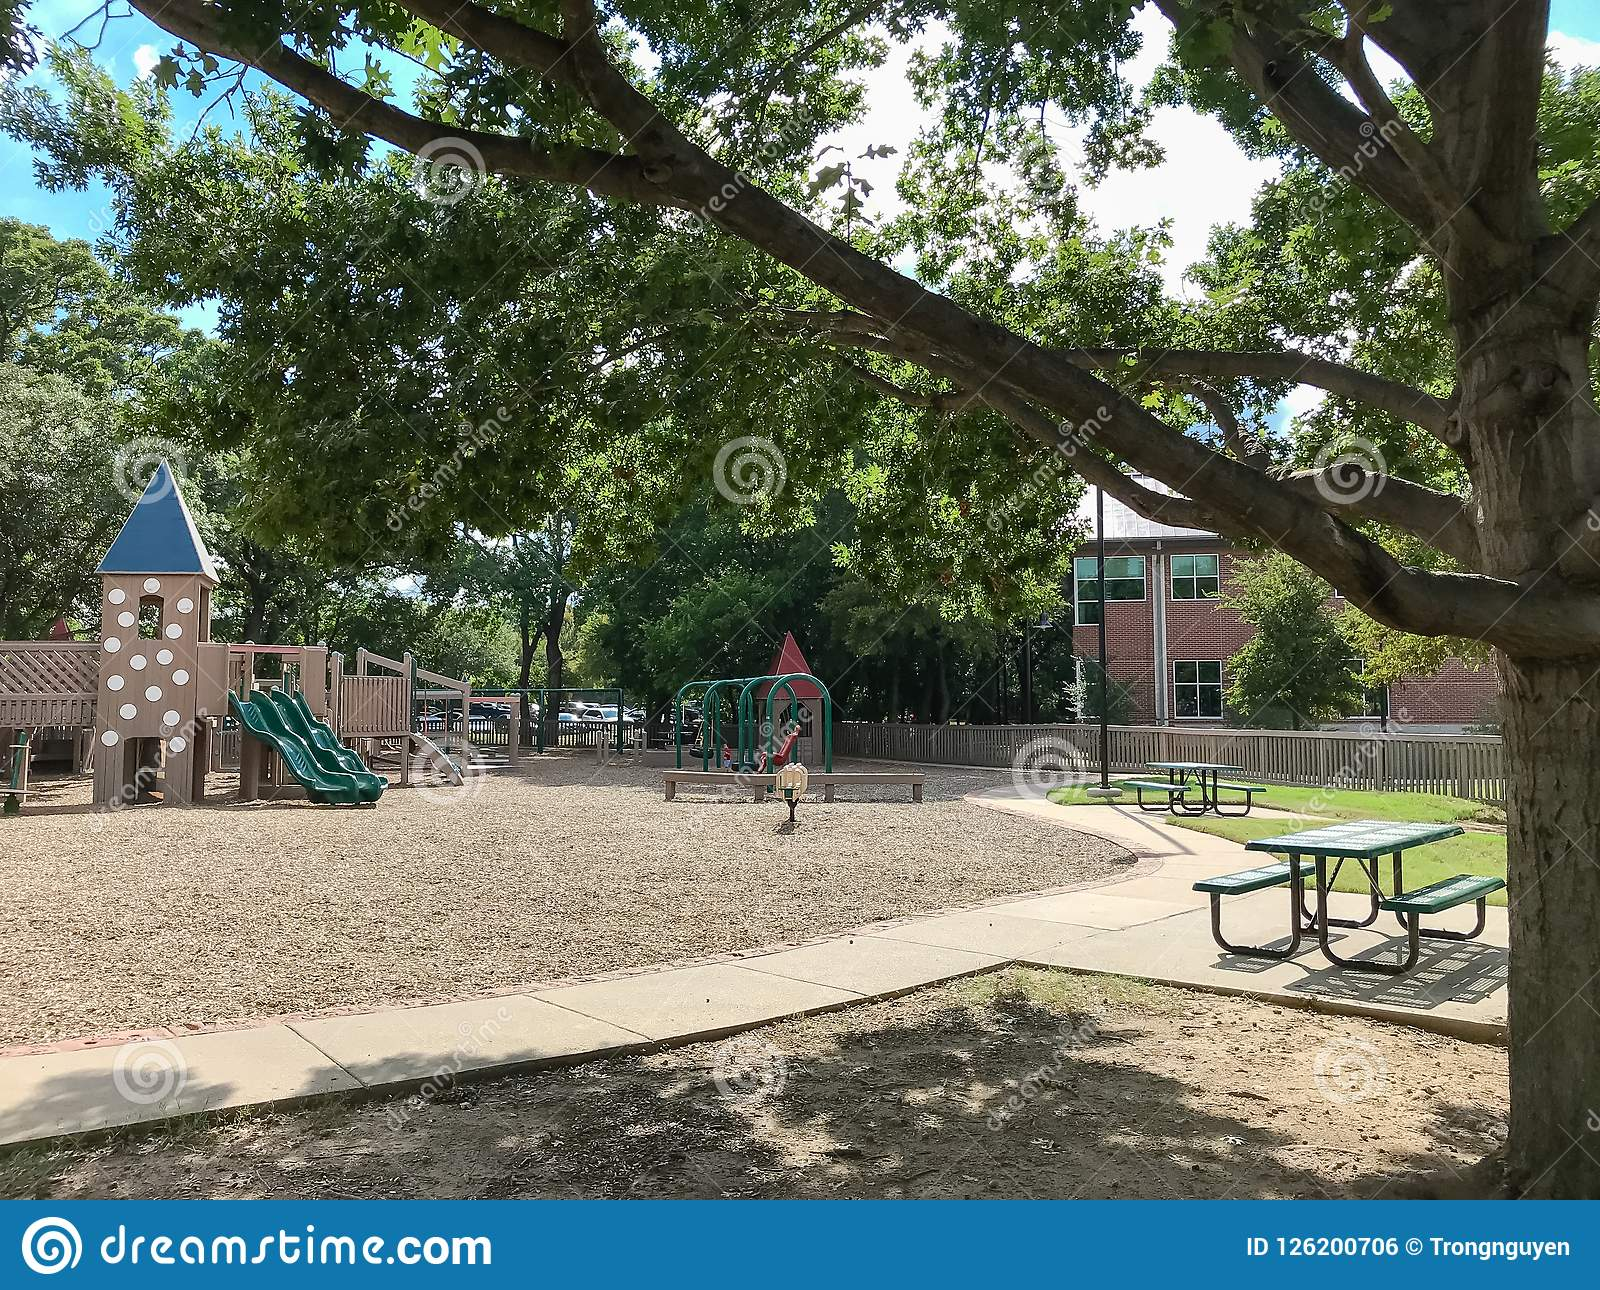 Picnic Tables At Public Wooden Castle Style Children Playground